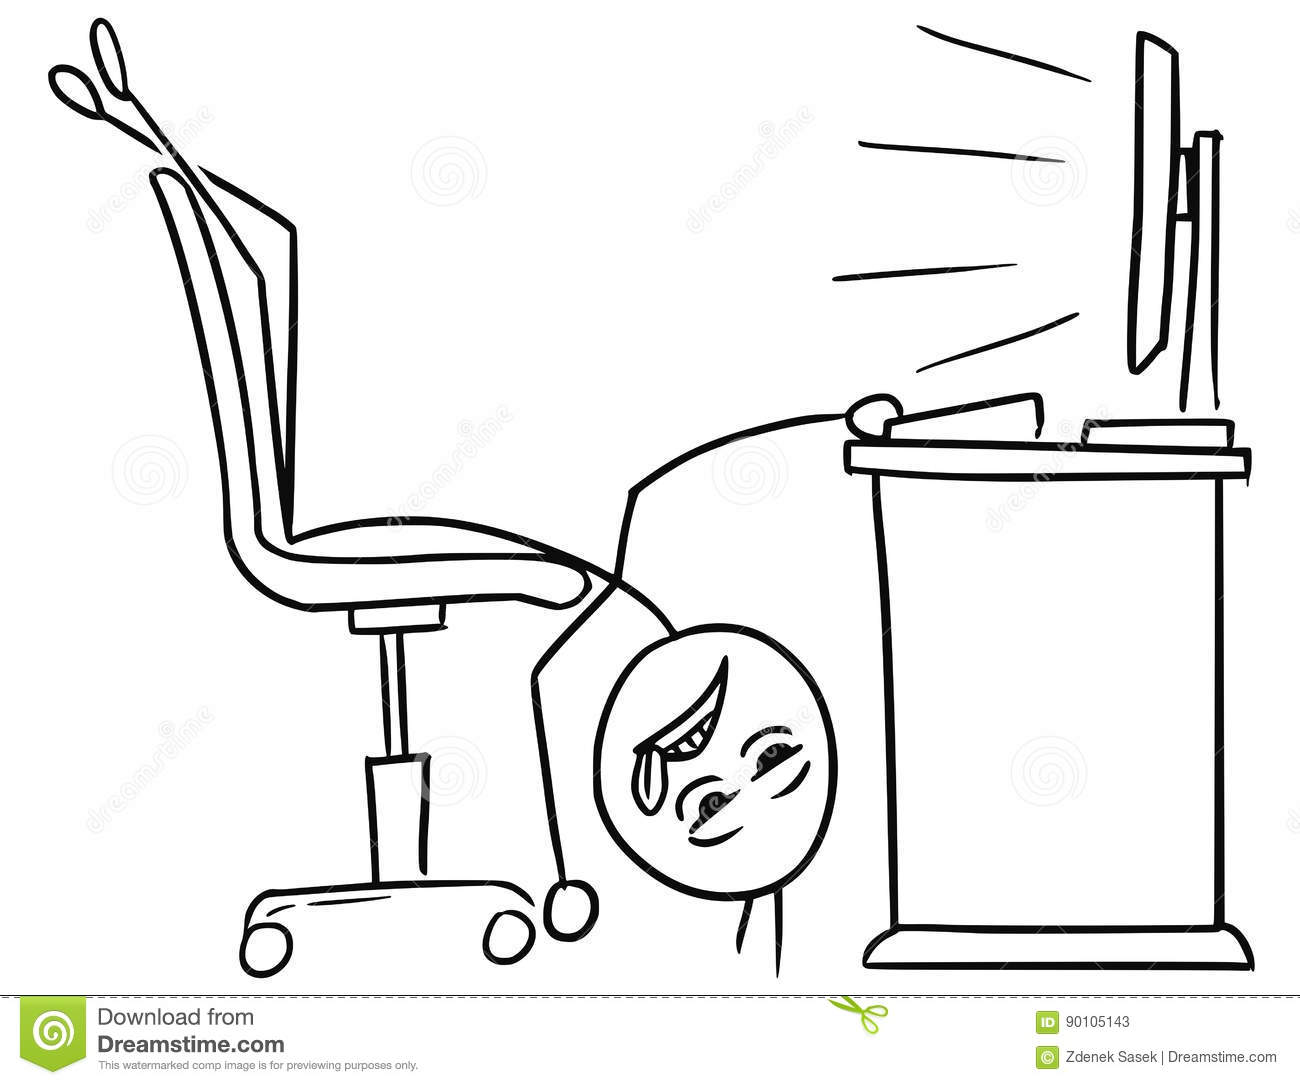 Vector Stick Man Cartoon Of Man Lying On The Office Chair